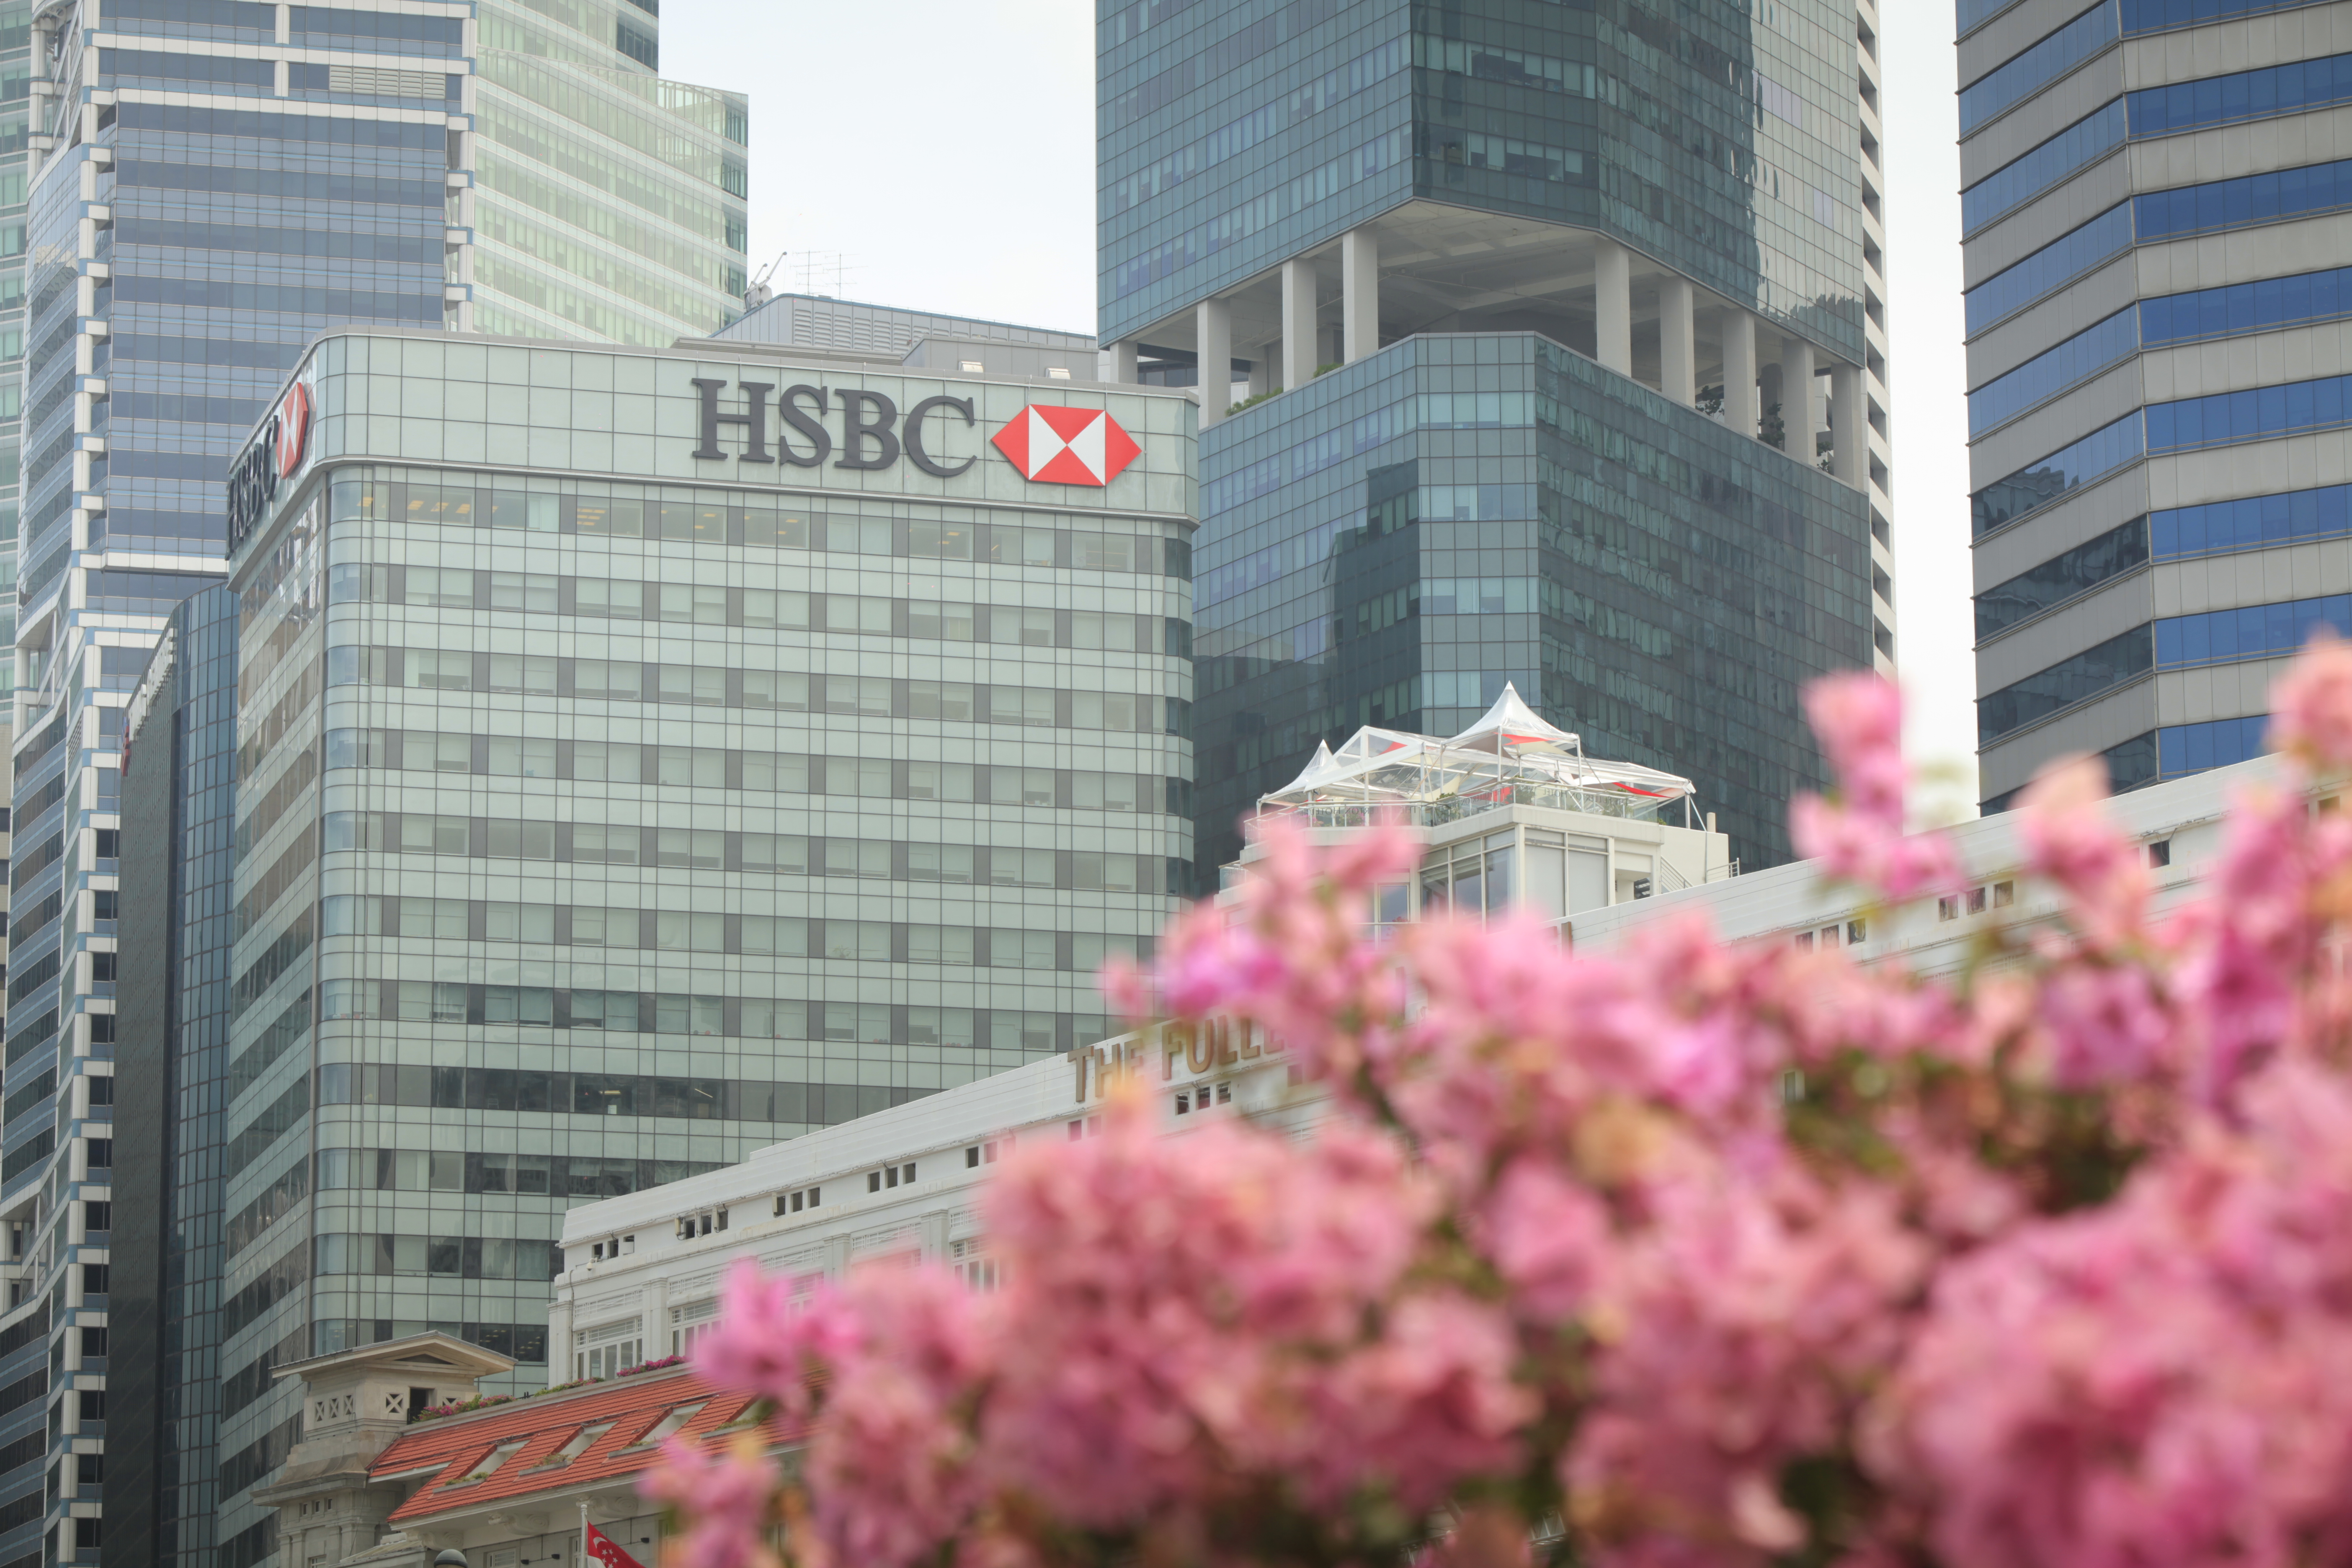 HSBC share price: FTSE 100 bank announces support measures for Hong Kong SMEs